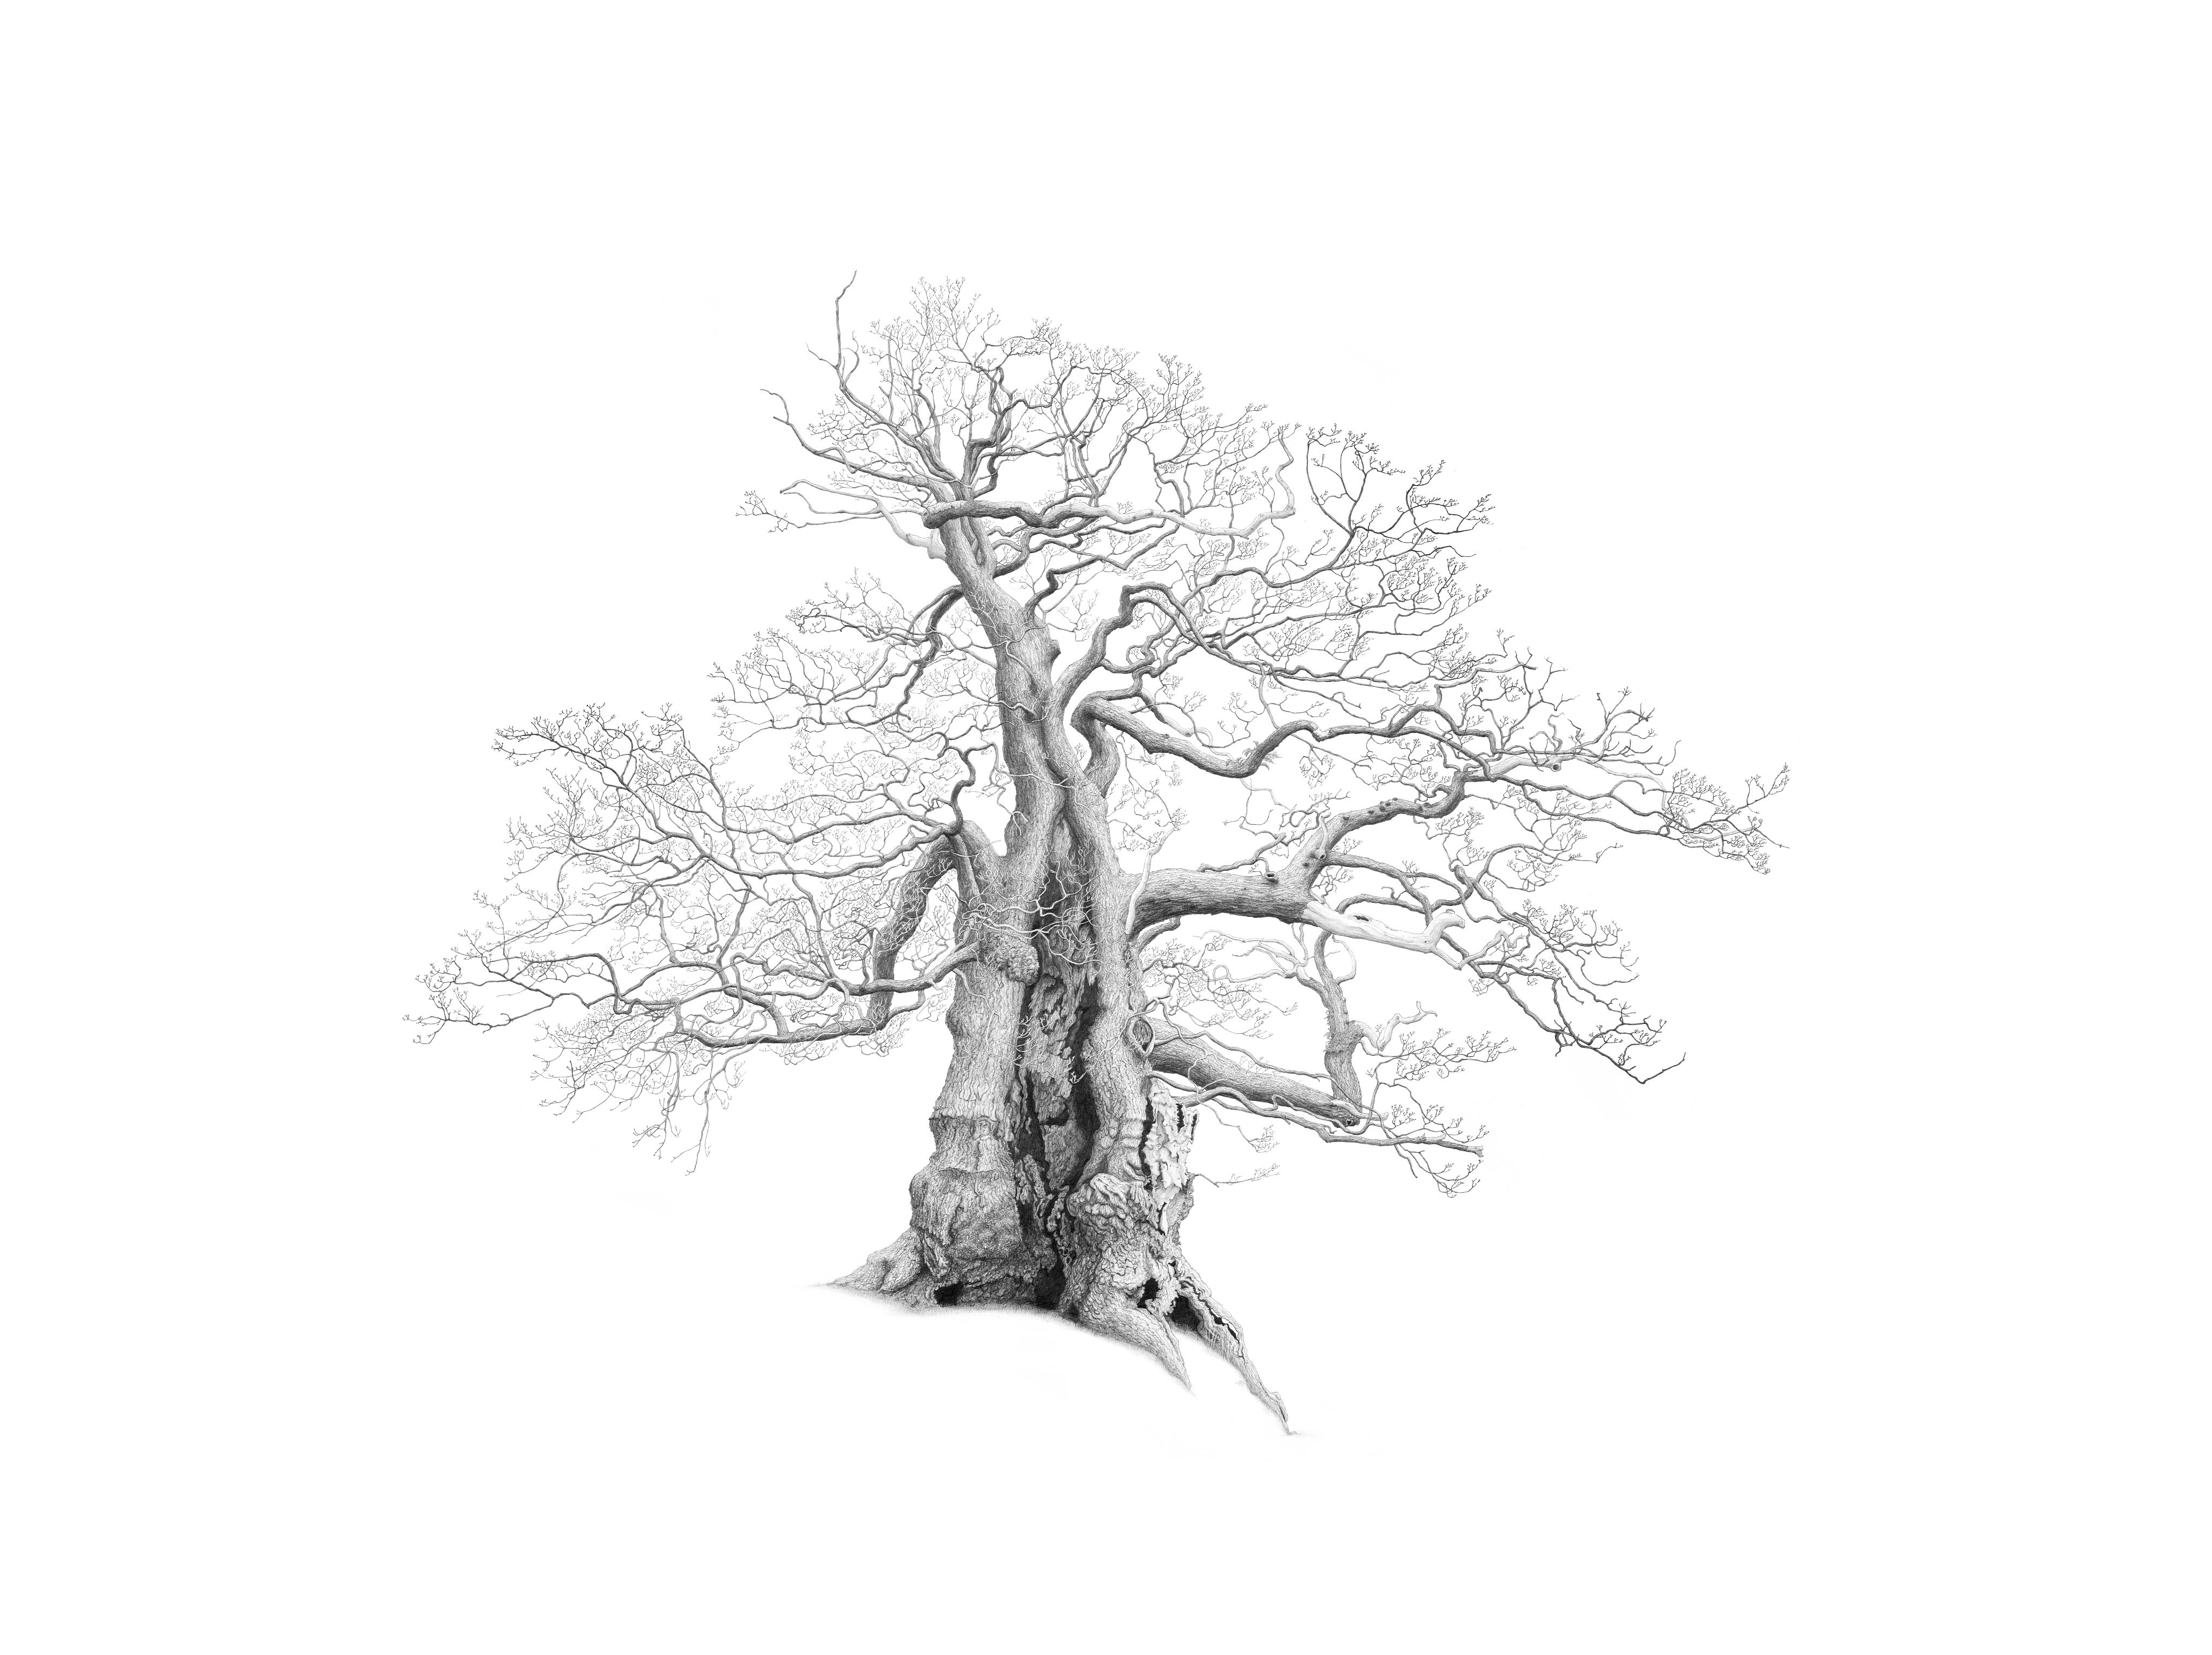 Drawing of Darley Oak in Cornwall by artist Mark Frith